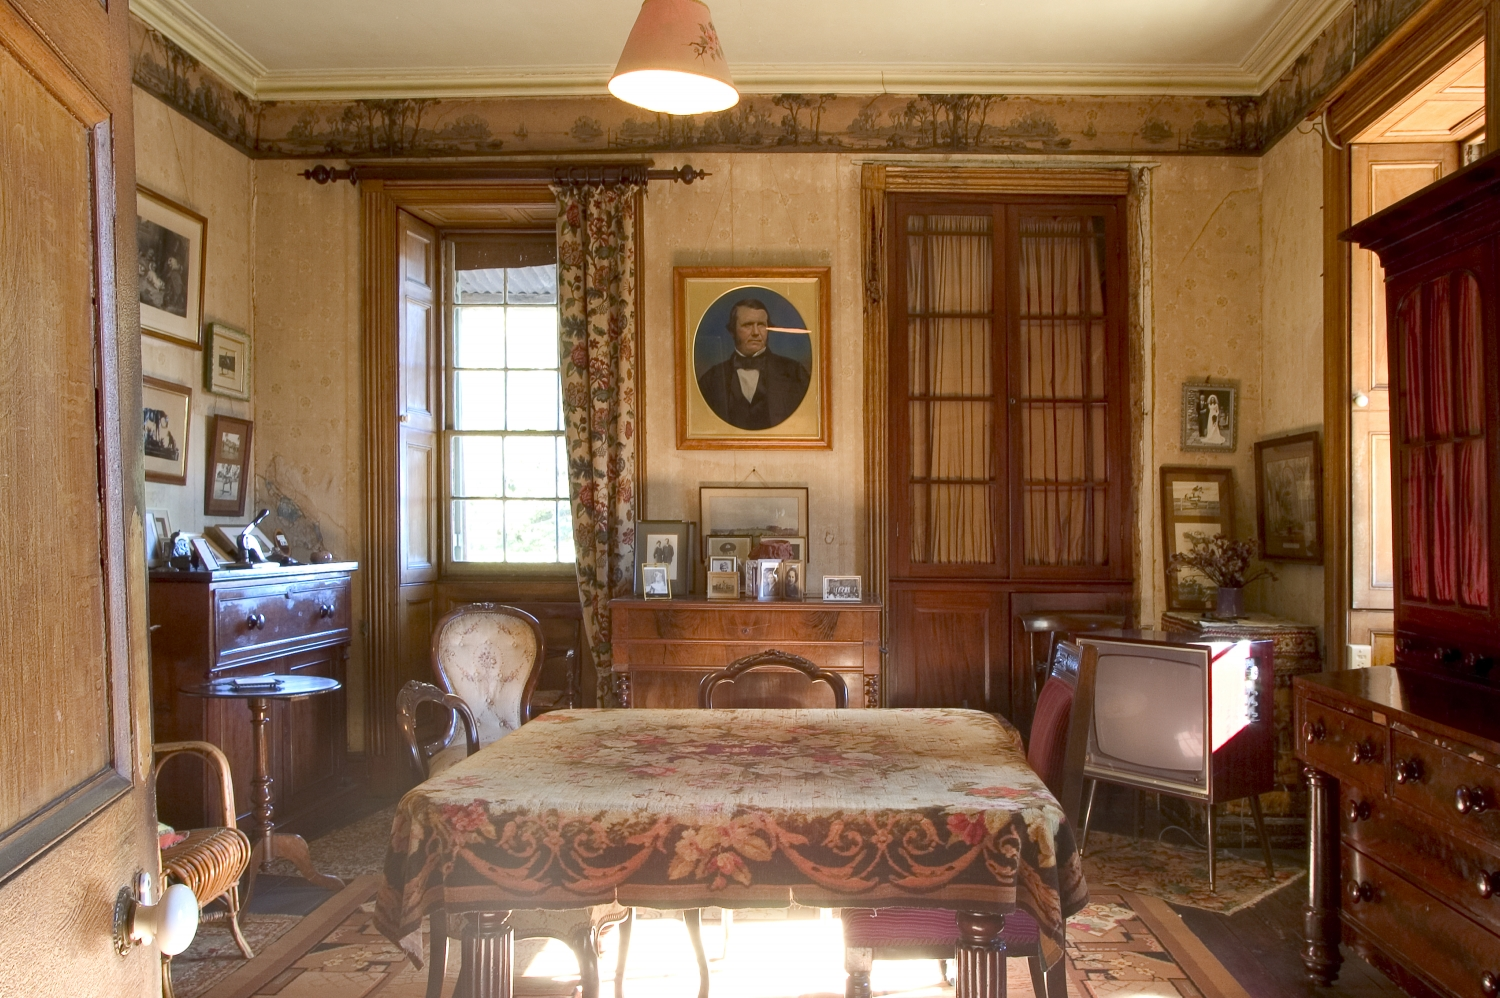 Interior of room set up with original furniture.